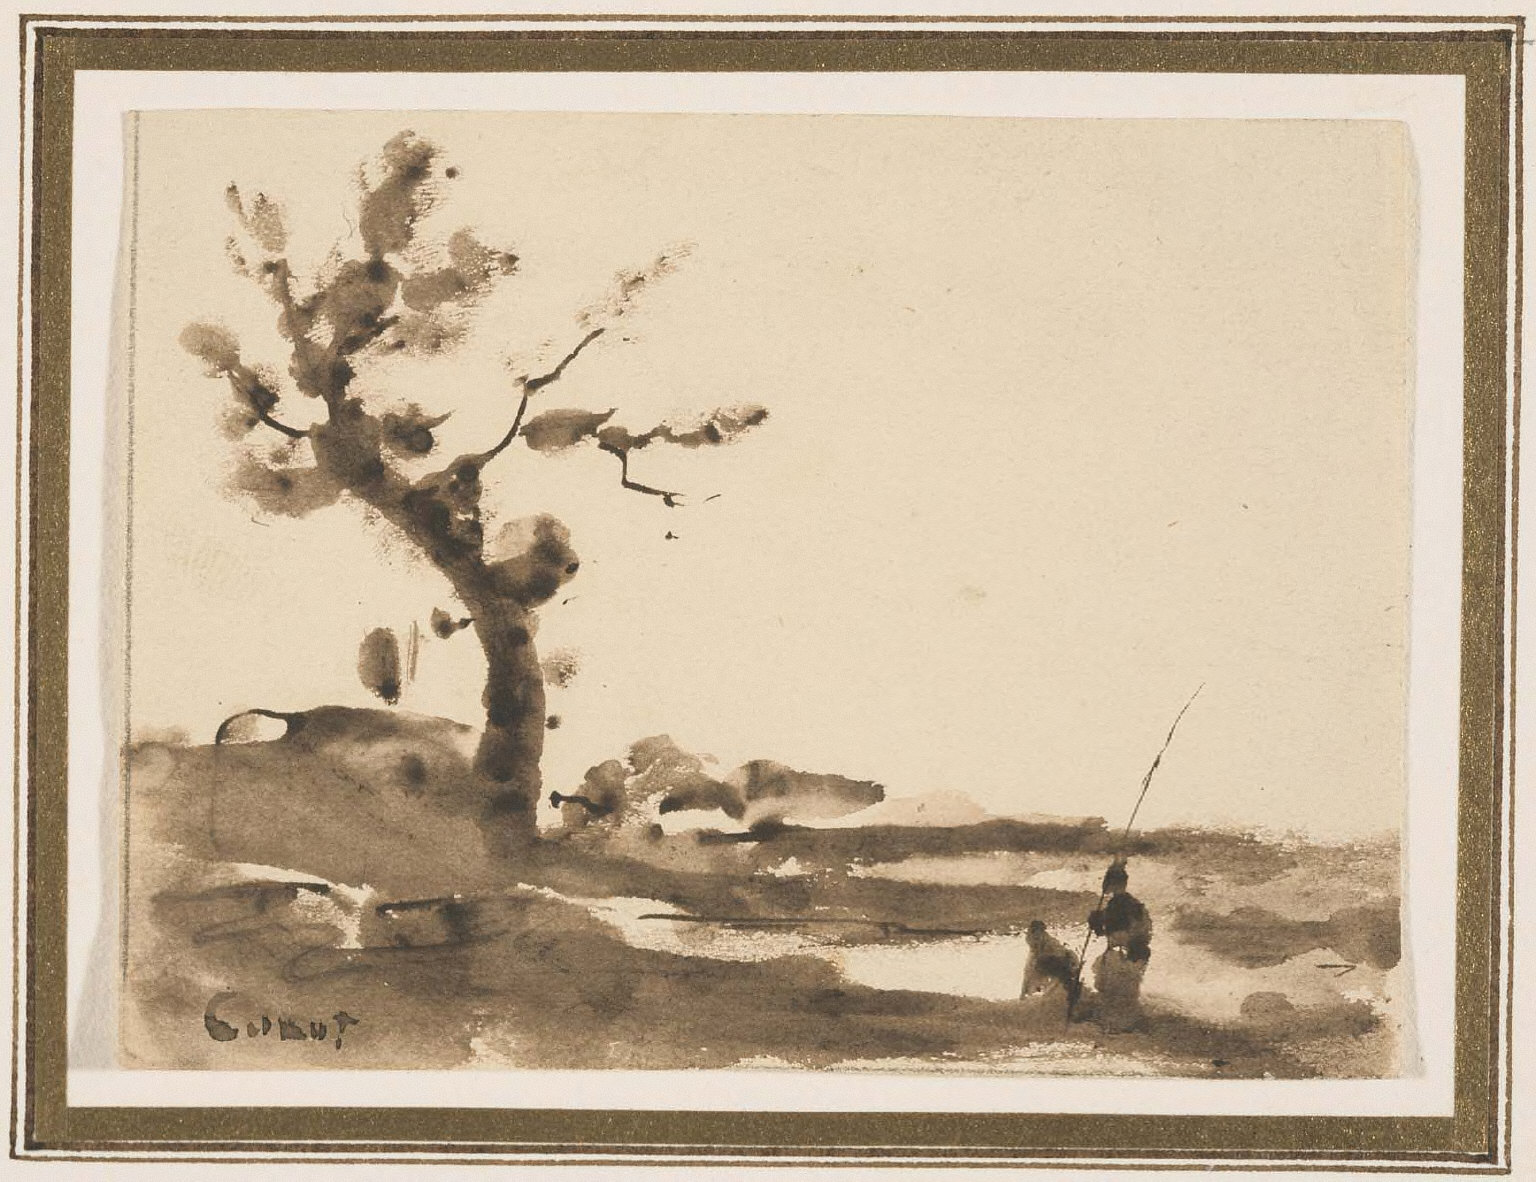 Landscape, with large tree on left, two figures at right, one holding long pole.